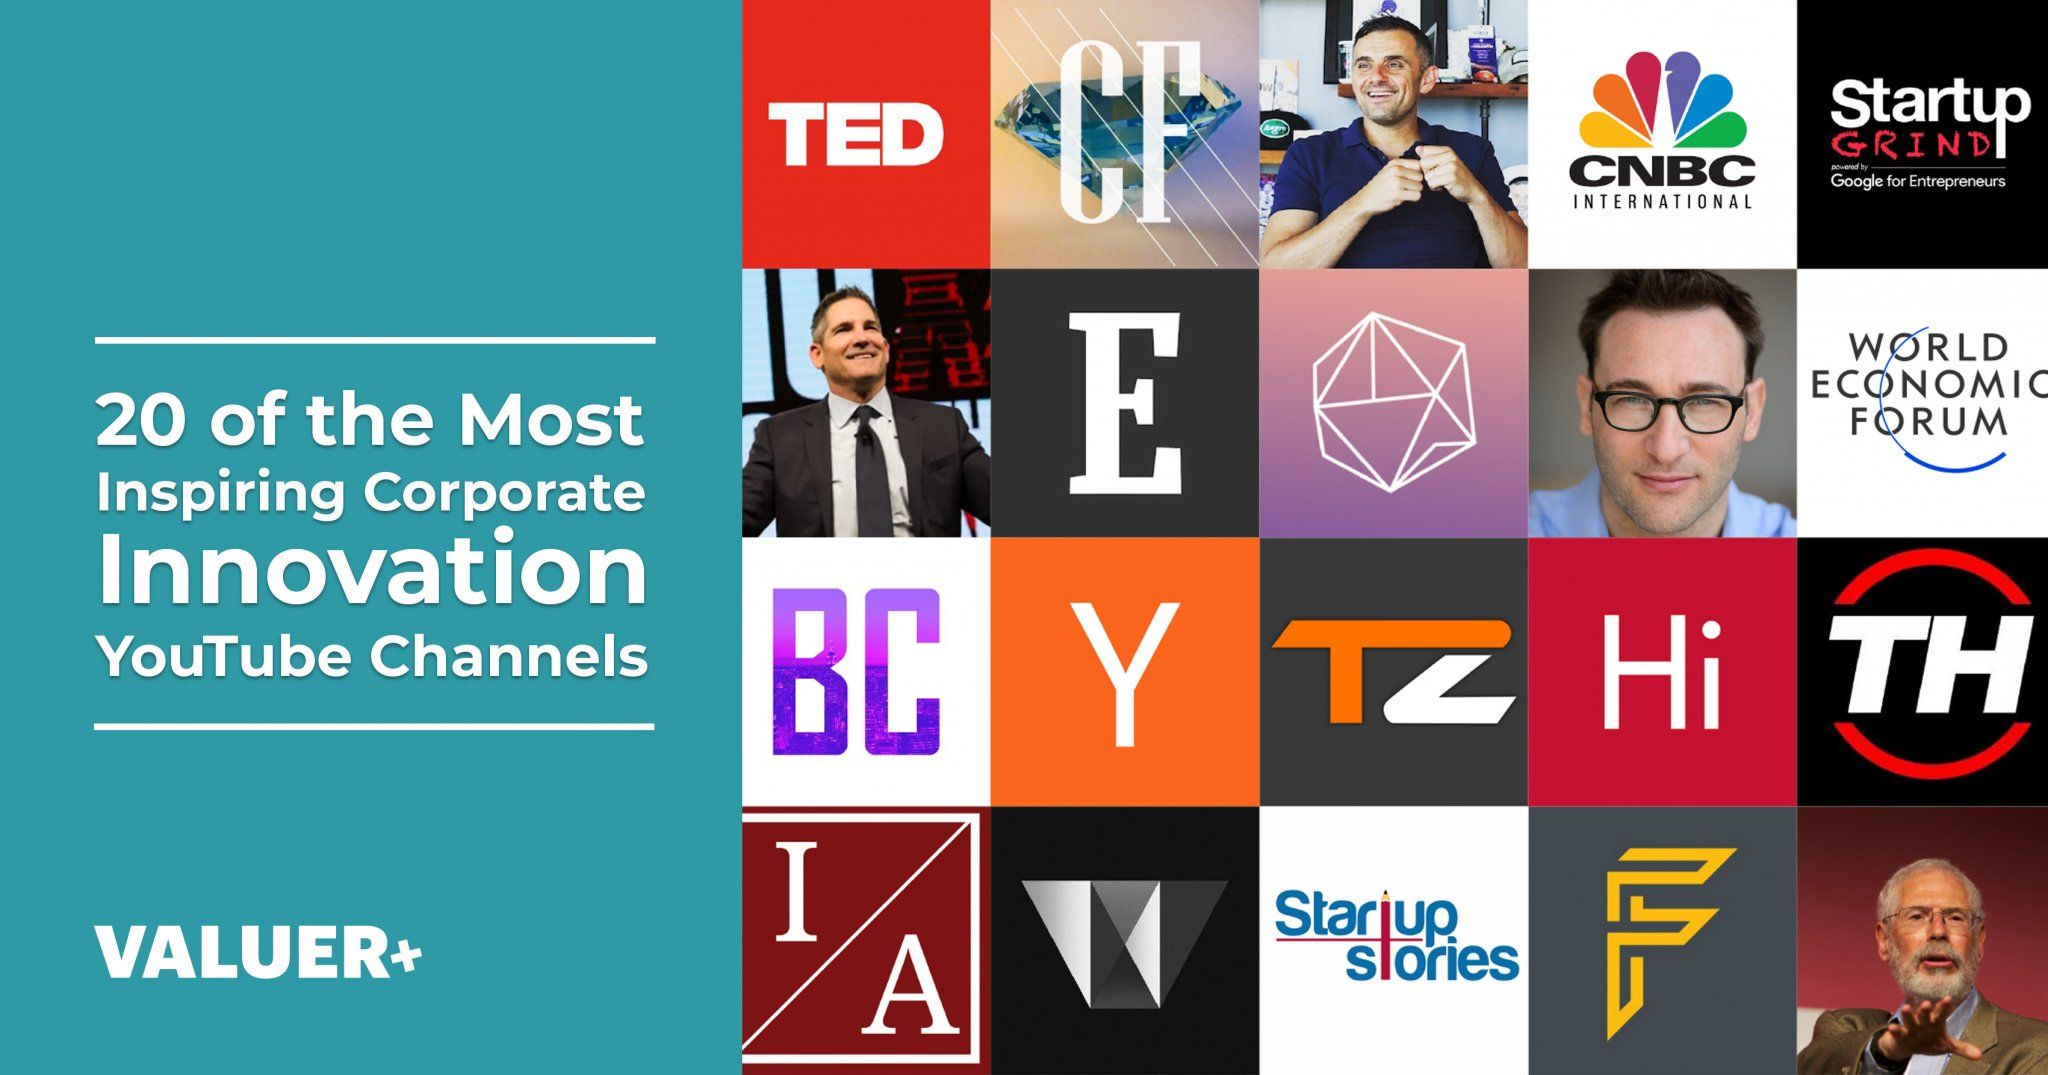 20 of the Most Inspiring Corporate Innovation YouTube